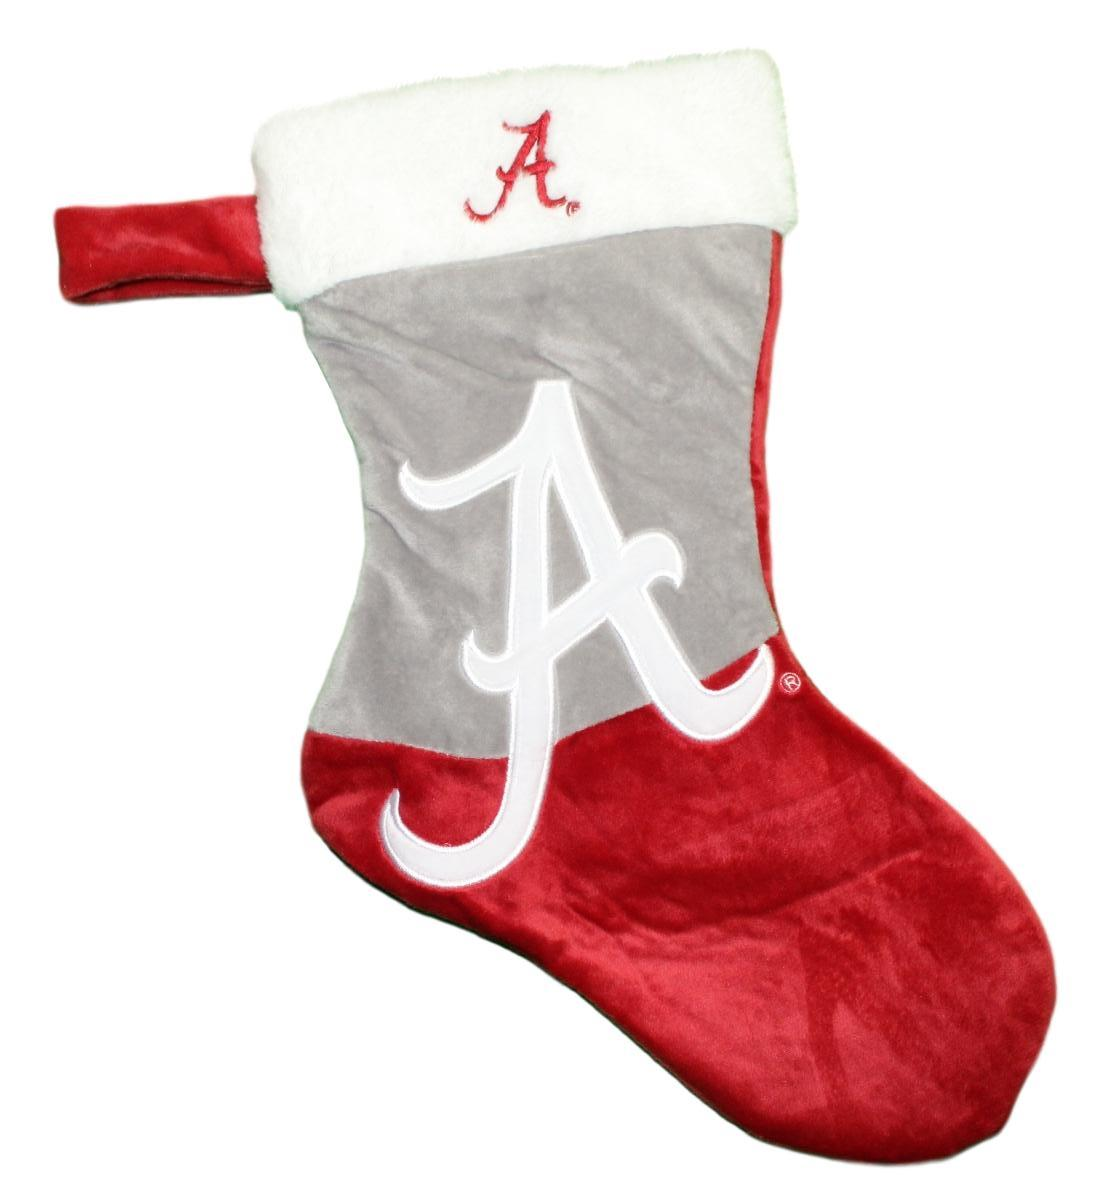 Alabama Crimson Tide 2018 NCAA Basic Logo Plush Christmas Stocking